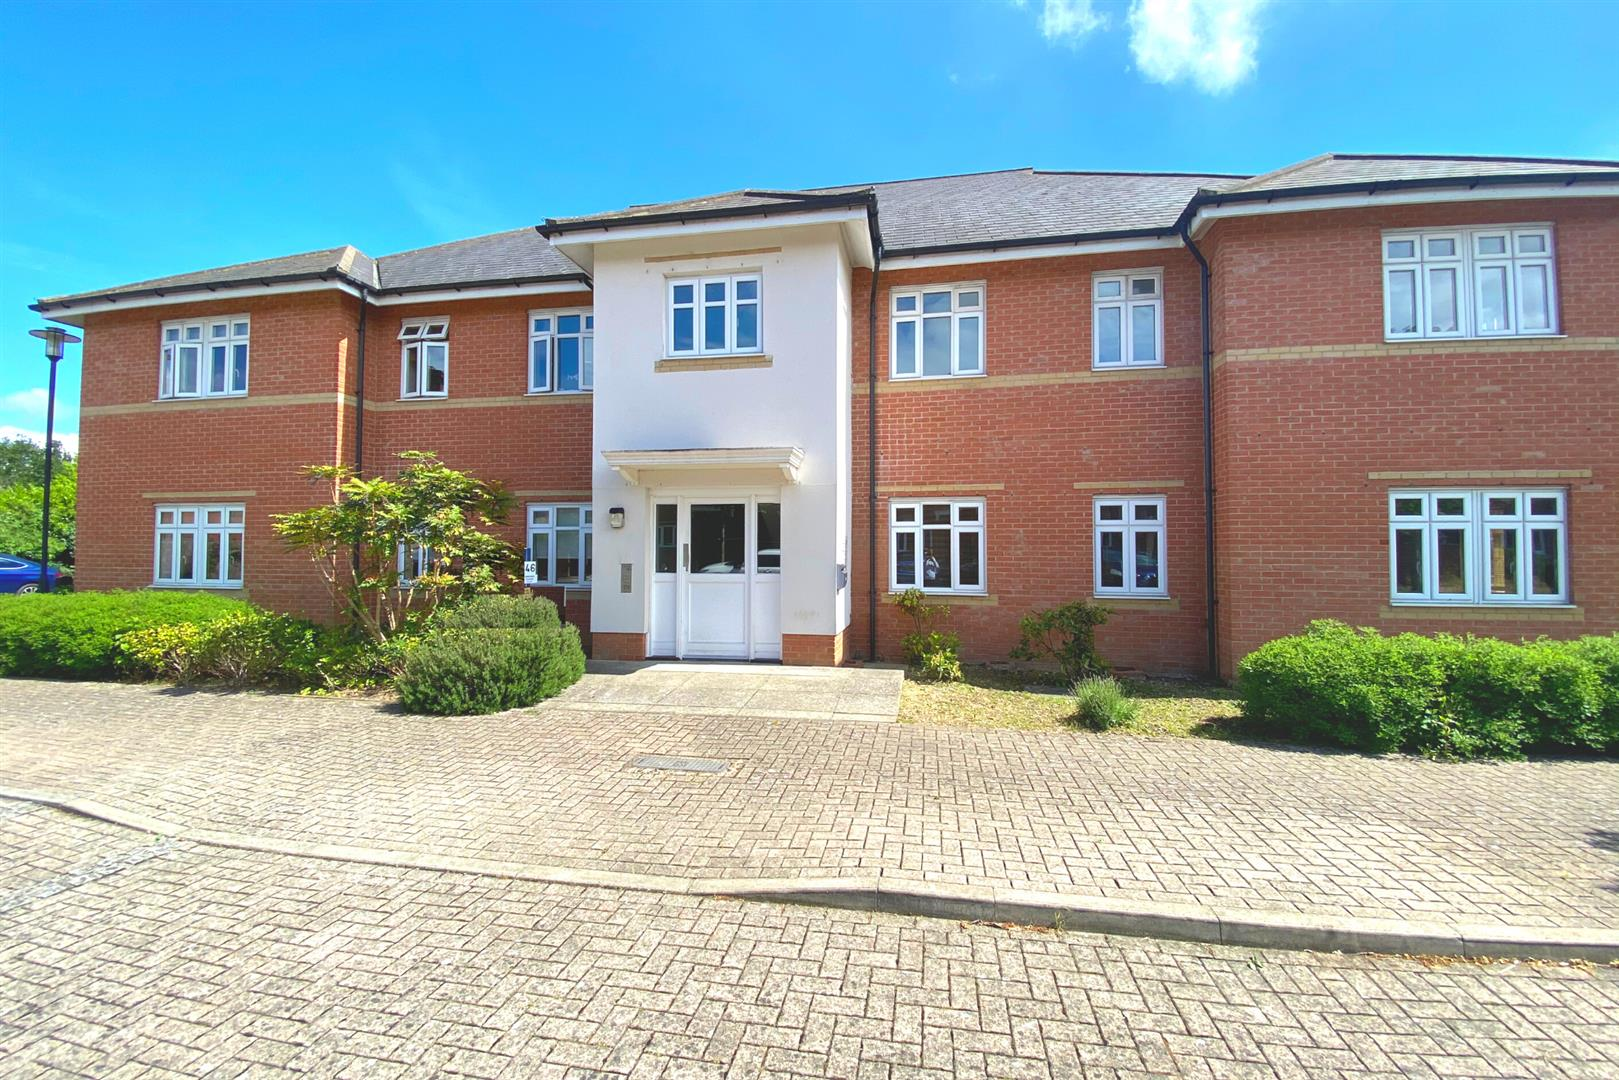 1 bed apartment for sale in Lower Earley, RG6